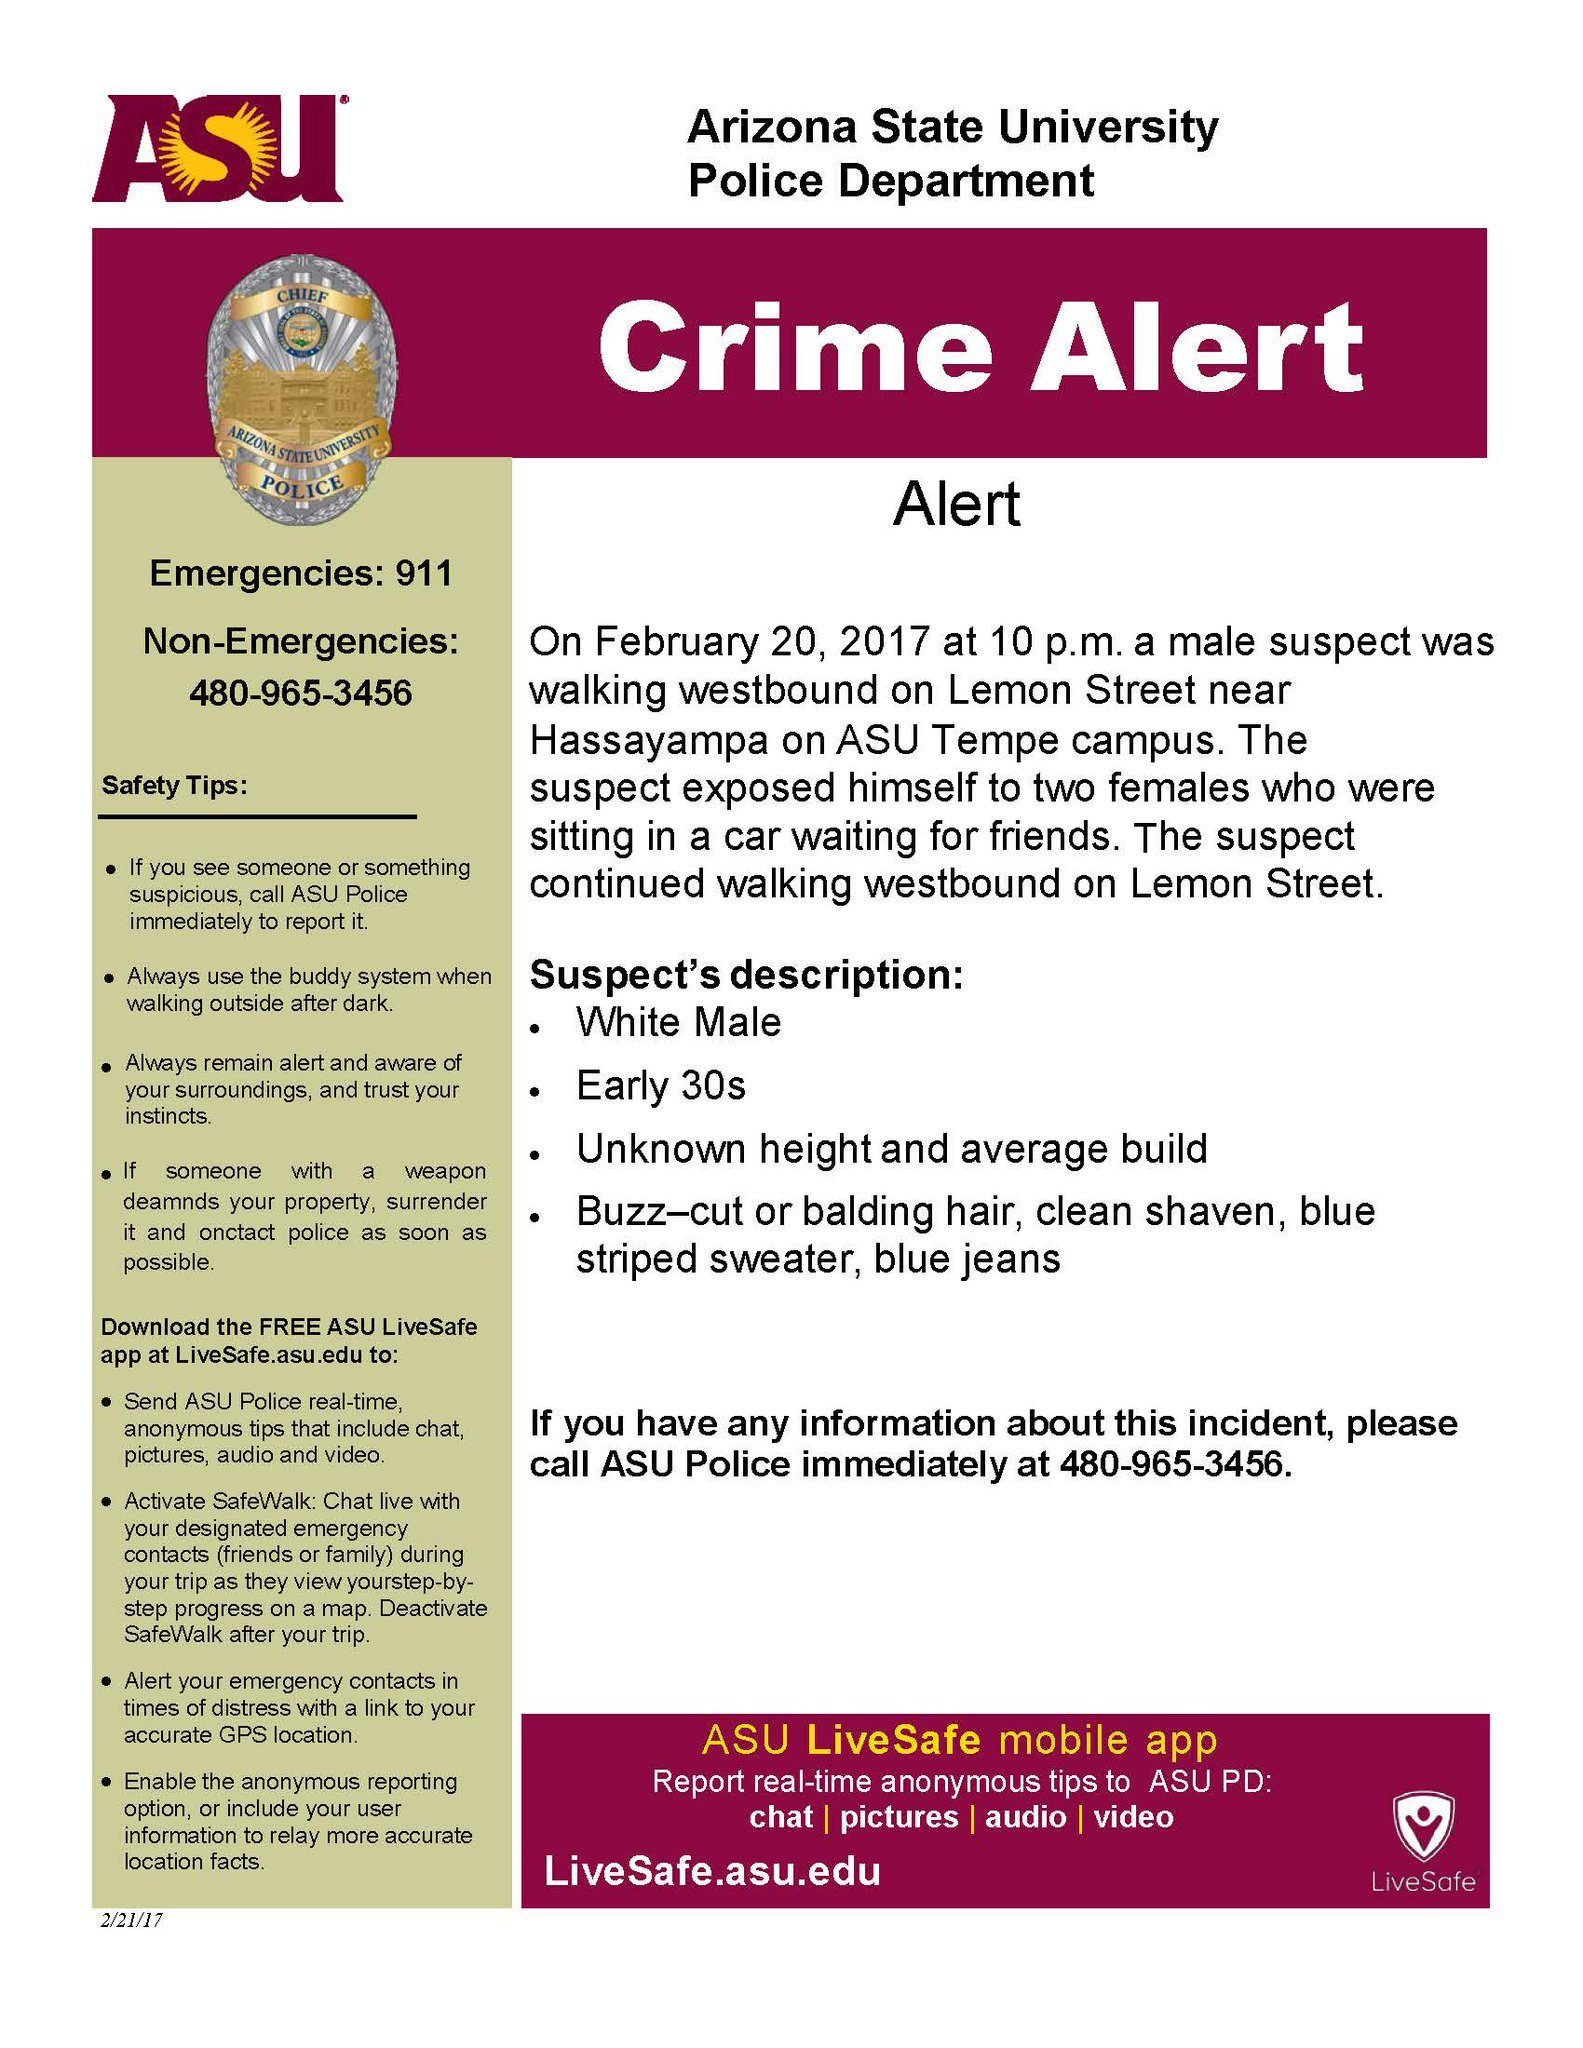 Click image to enlarge (Source: Arizona State University Police Department via Twitter)